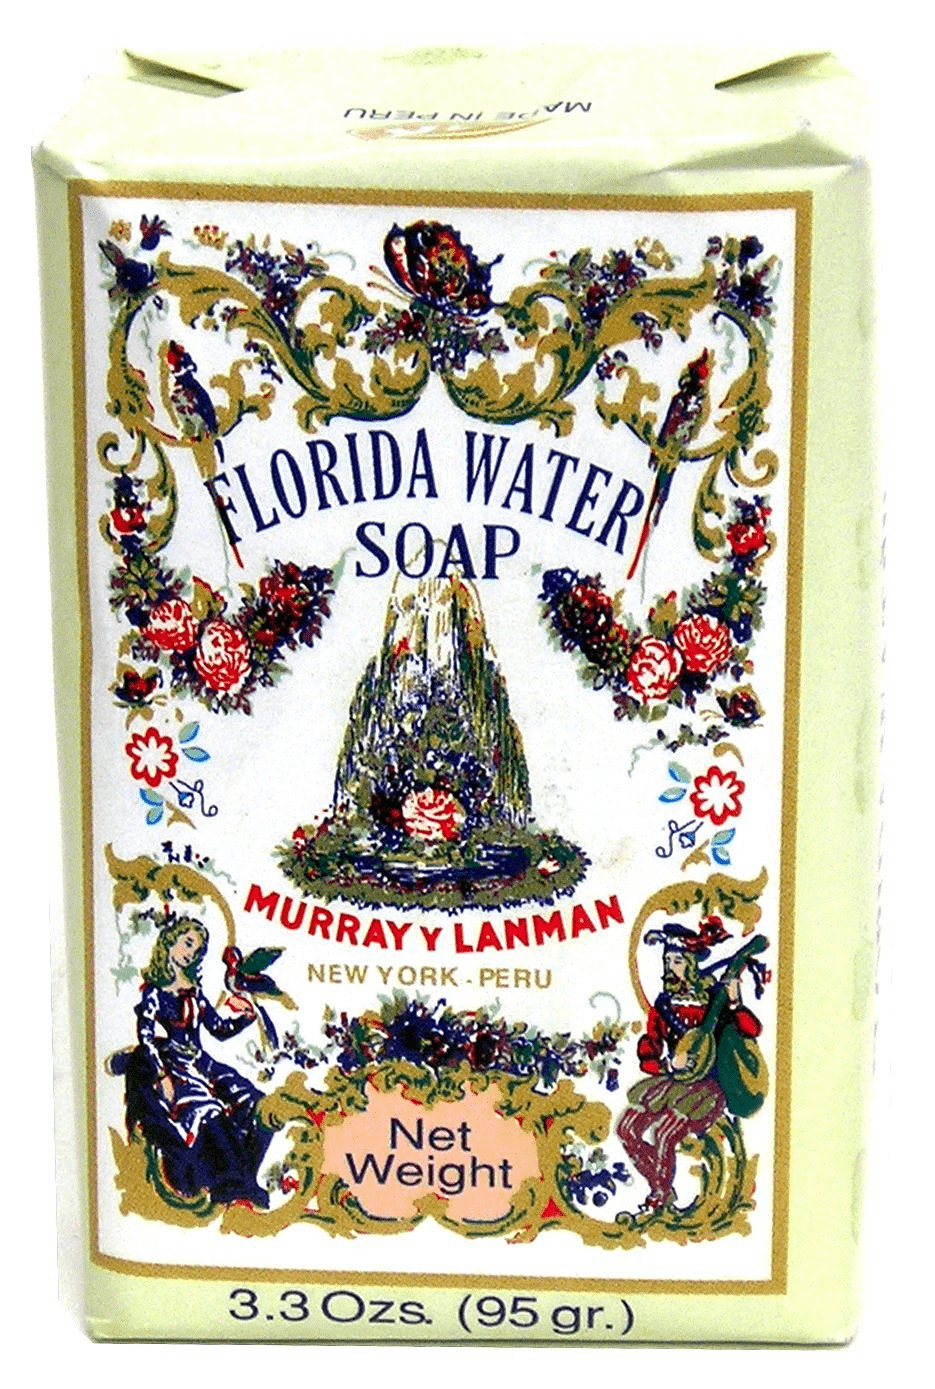 Florida Water (Agua Florida) Soap - 3.3oz bar